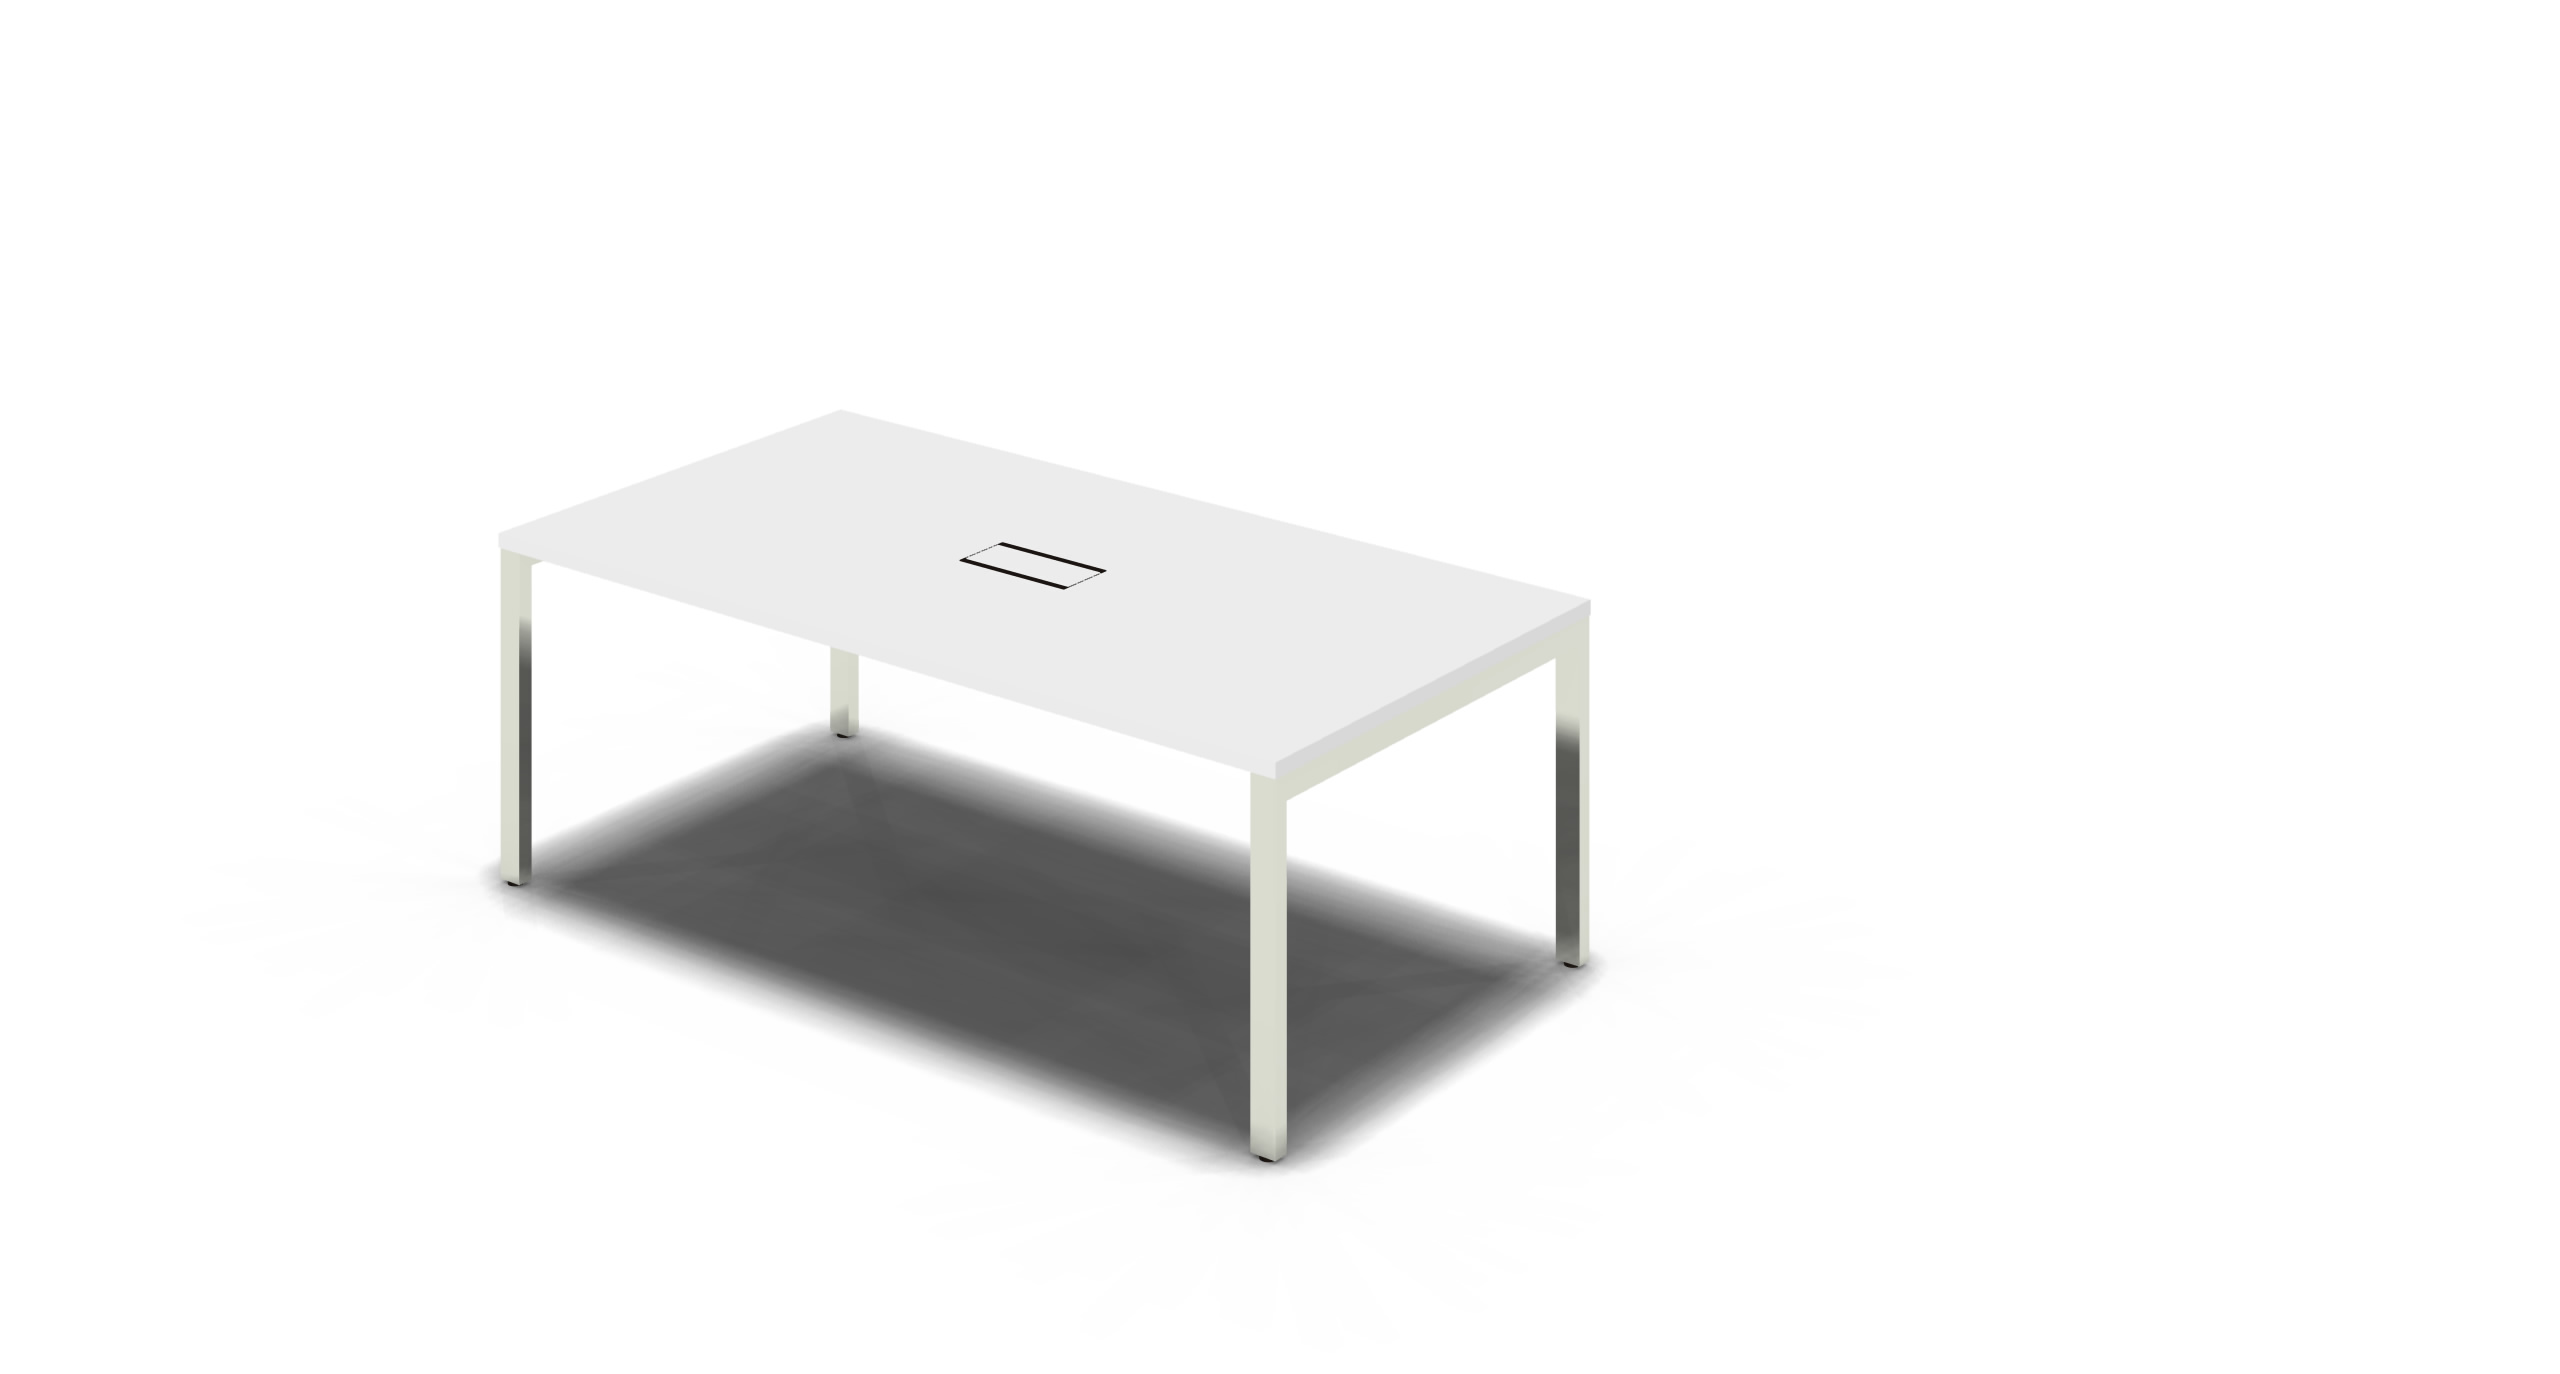 Table_Square_1800x900_Chrome_White_withOption